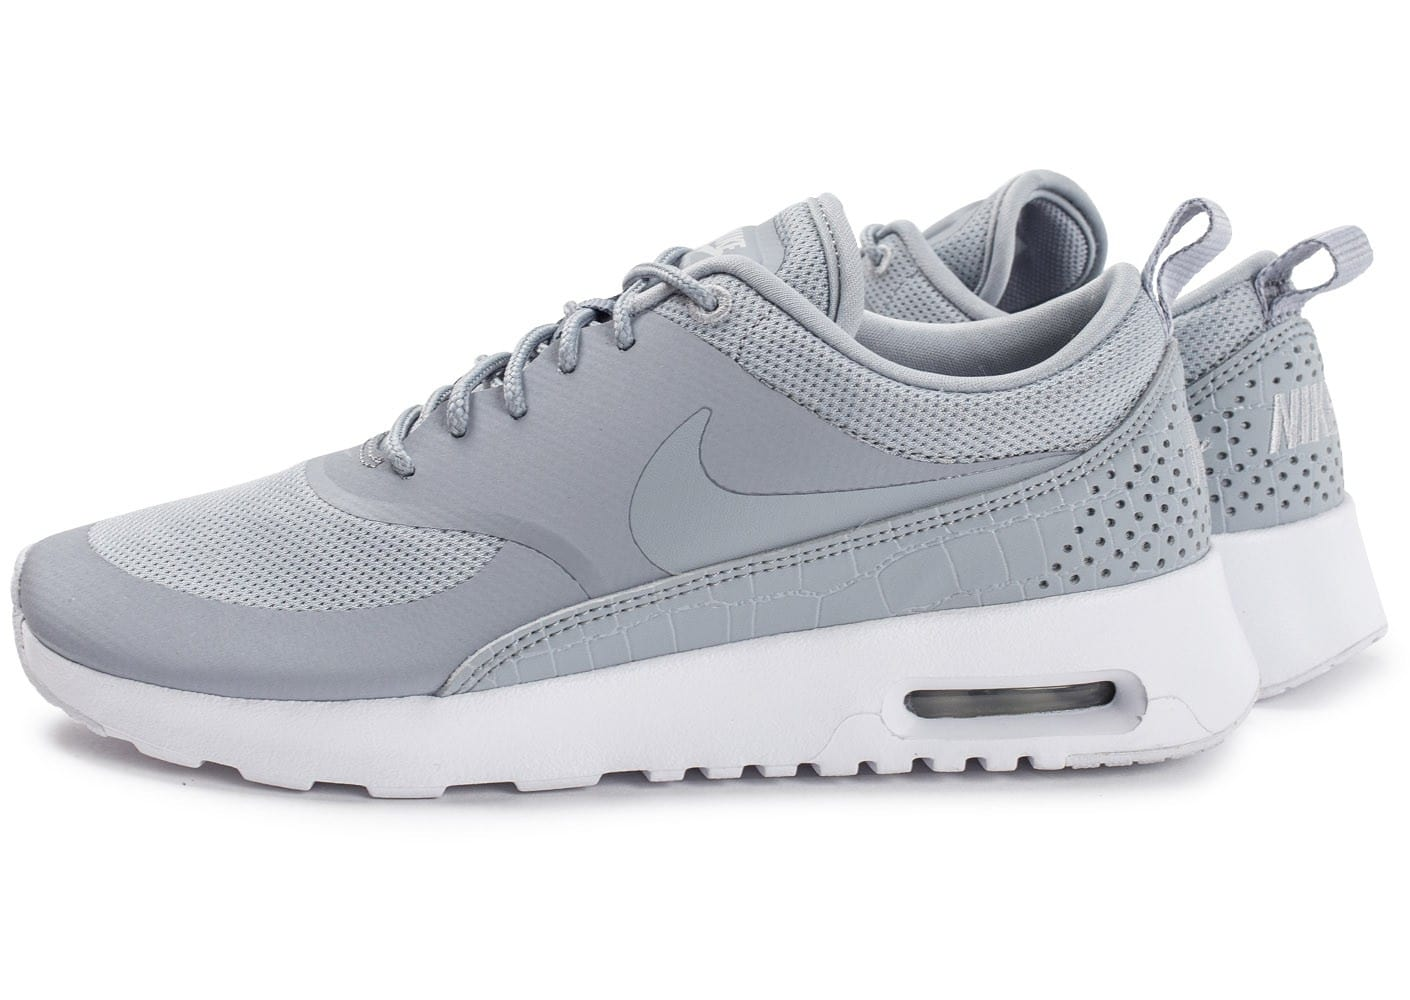 Nike Air Max Thea W grise - Chaussures Baskets femme - Chausport